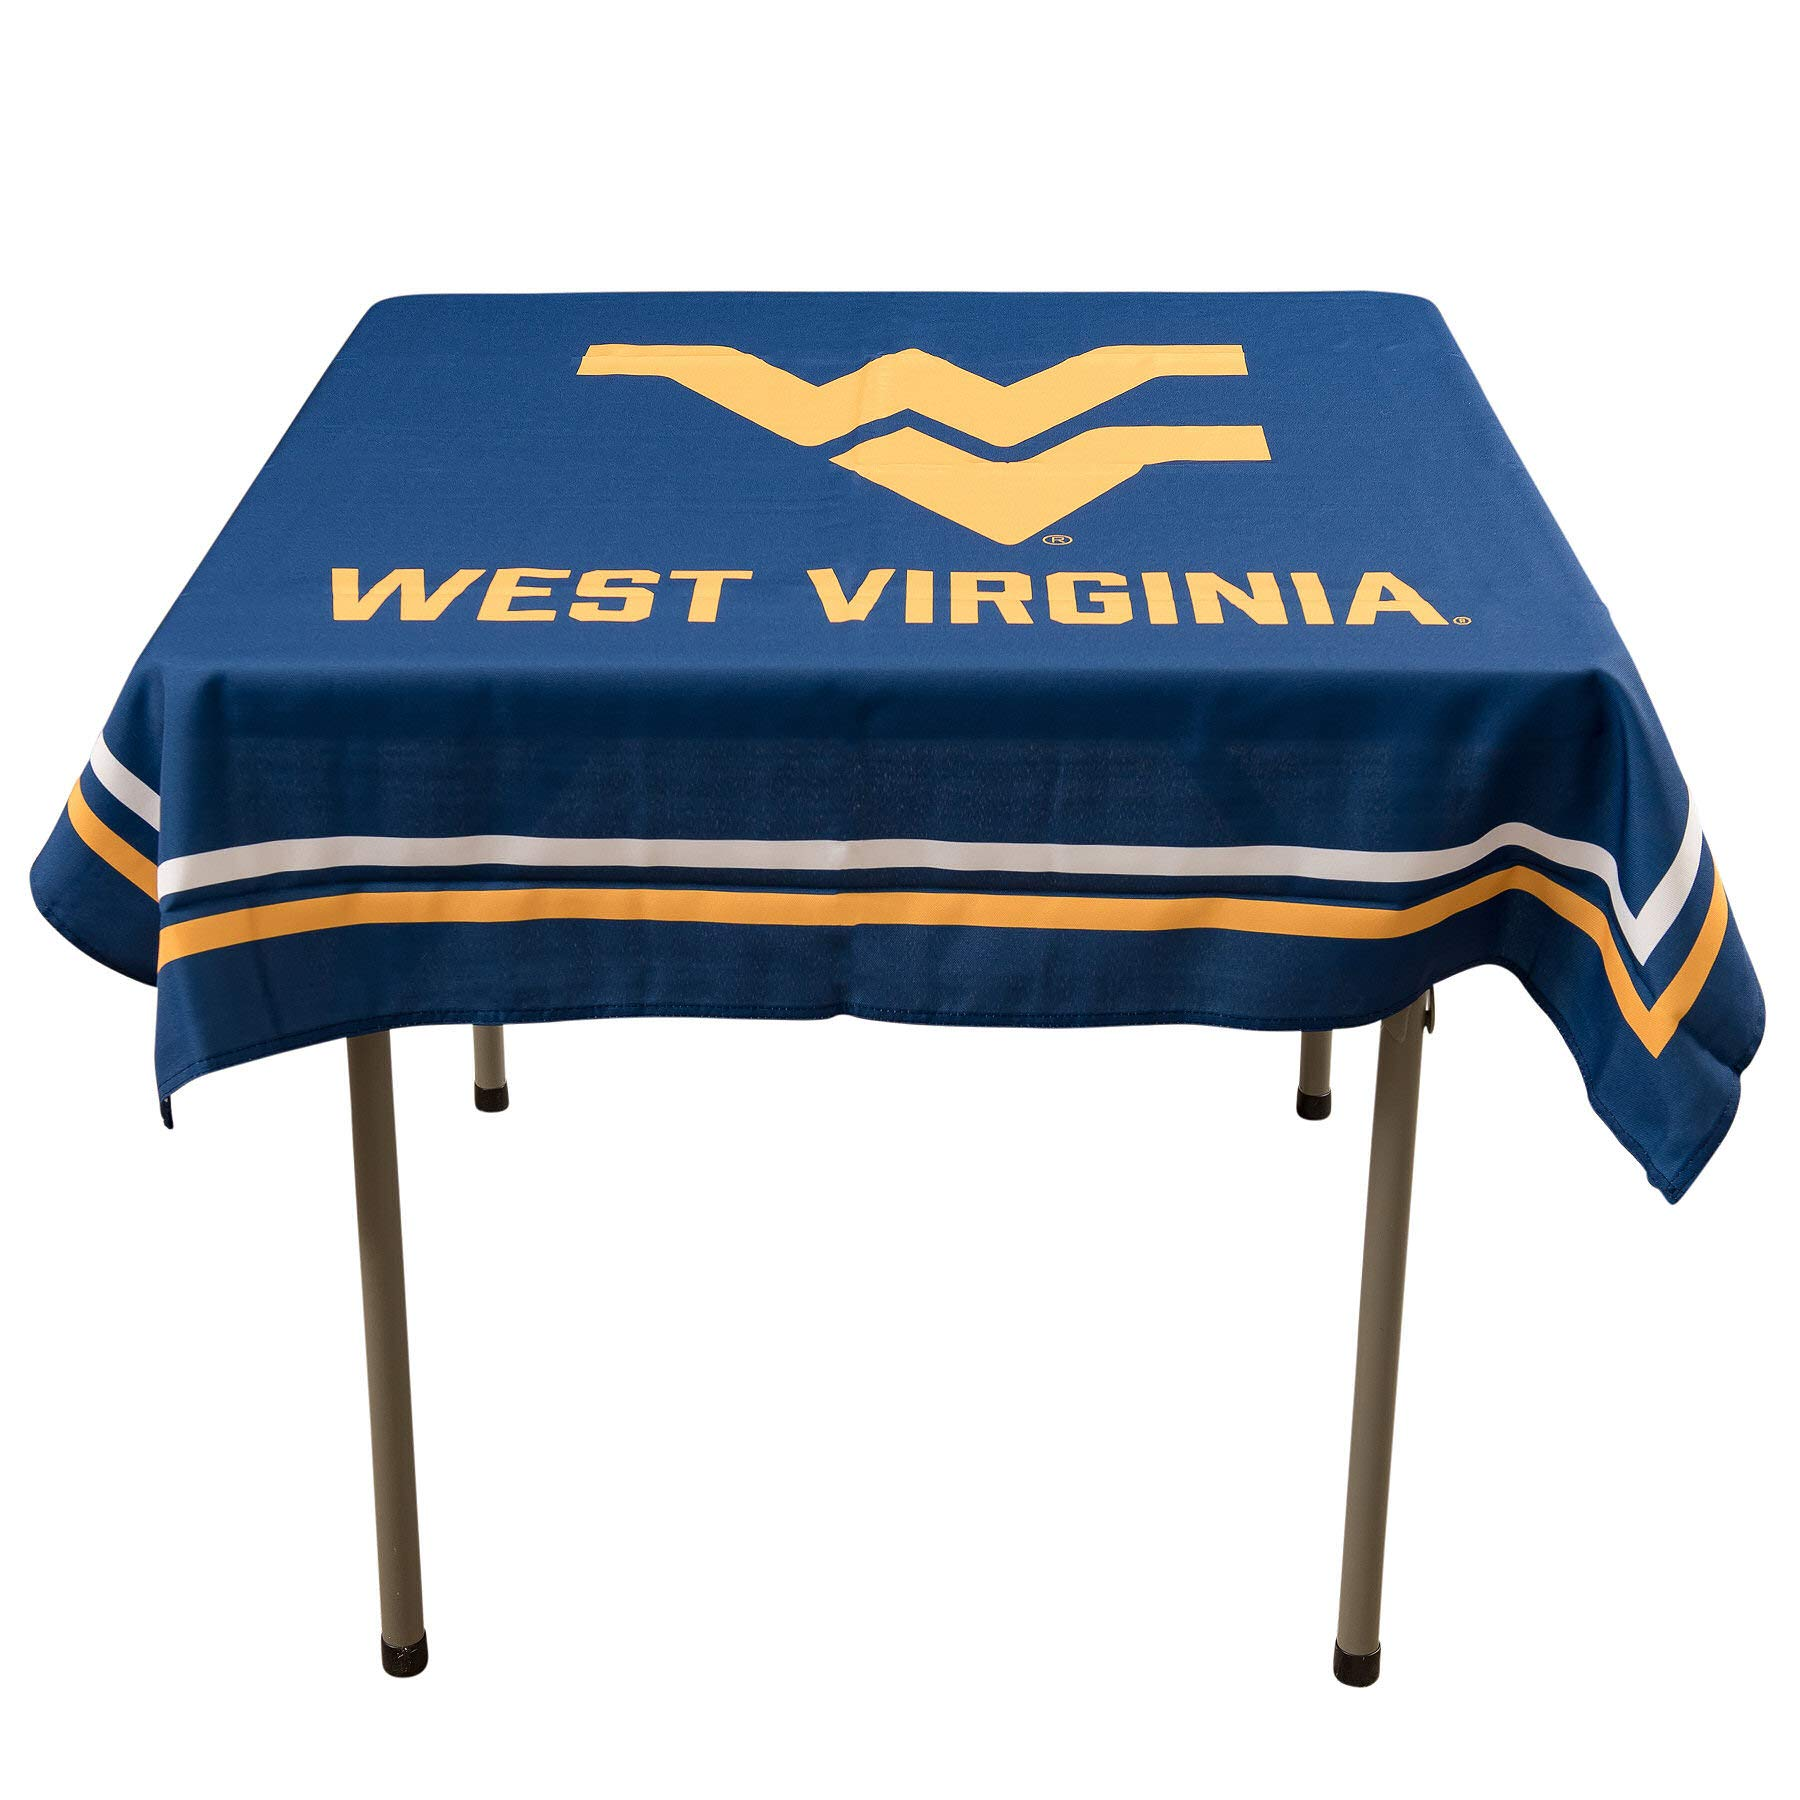 College Flags and Banners Co. West Virginia Mountaineers Logo Tablecloth or Table Overlay